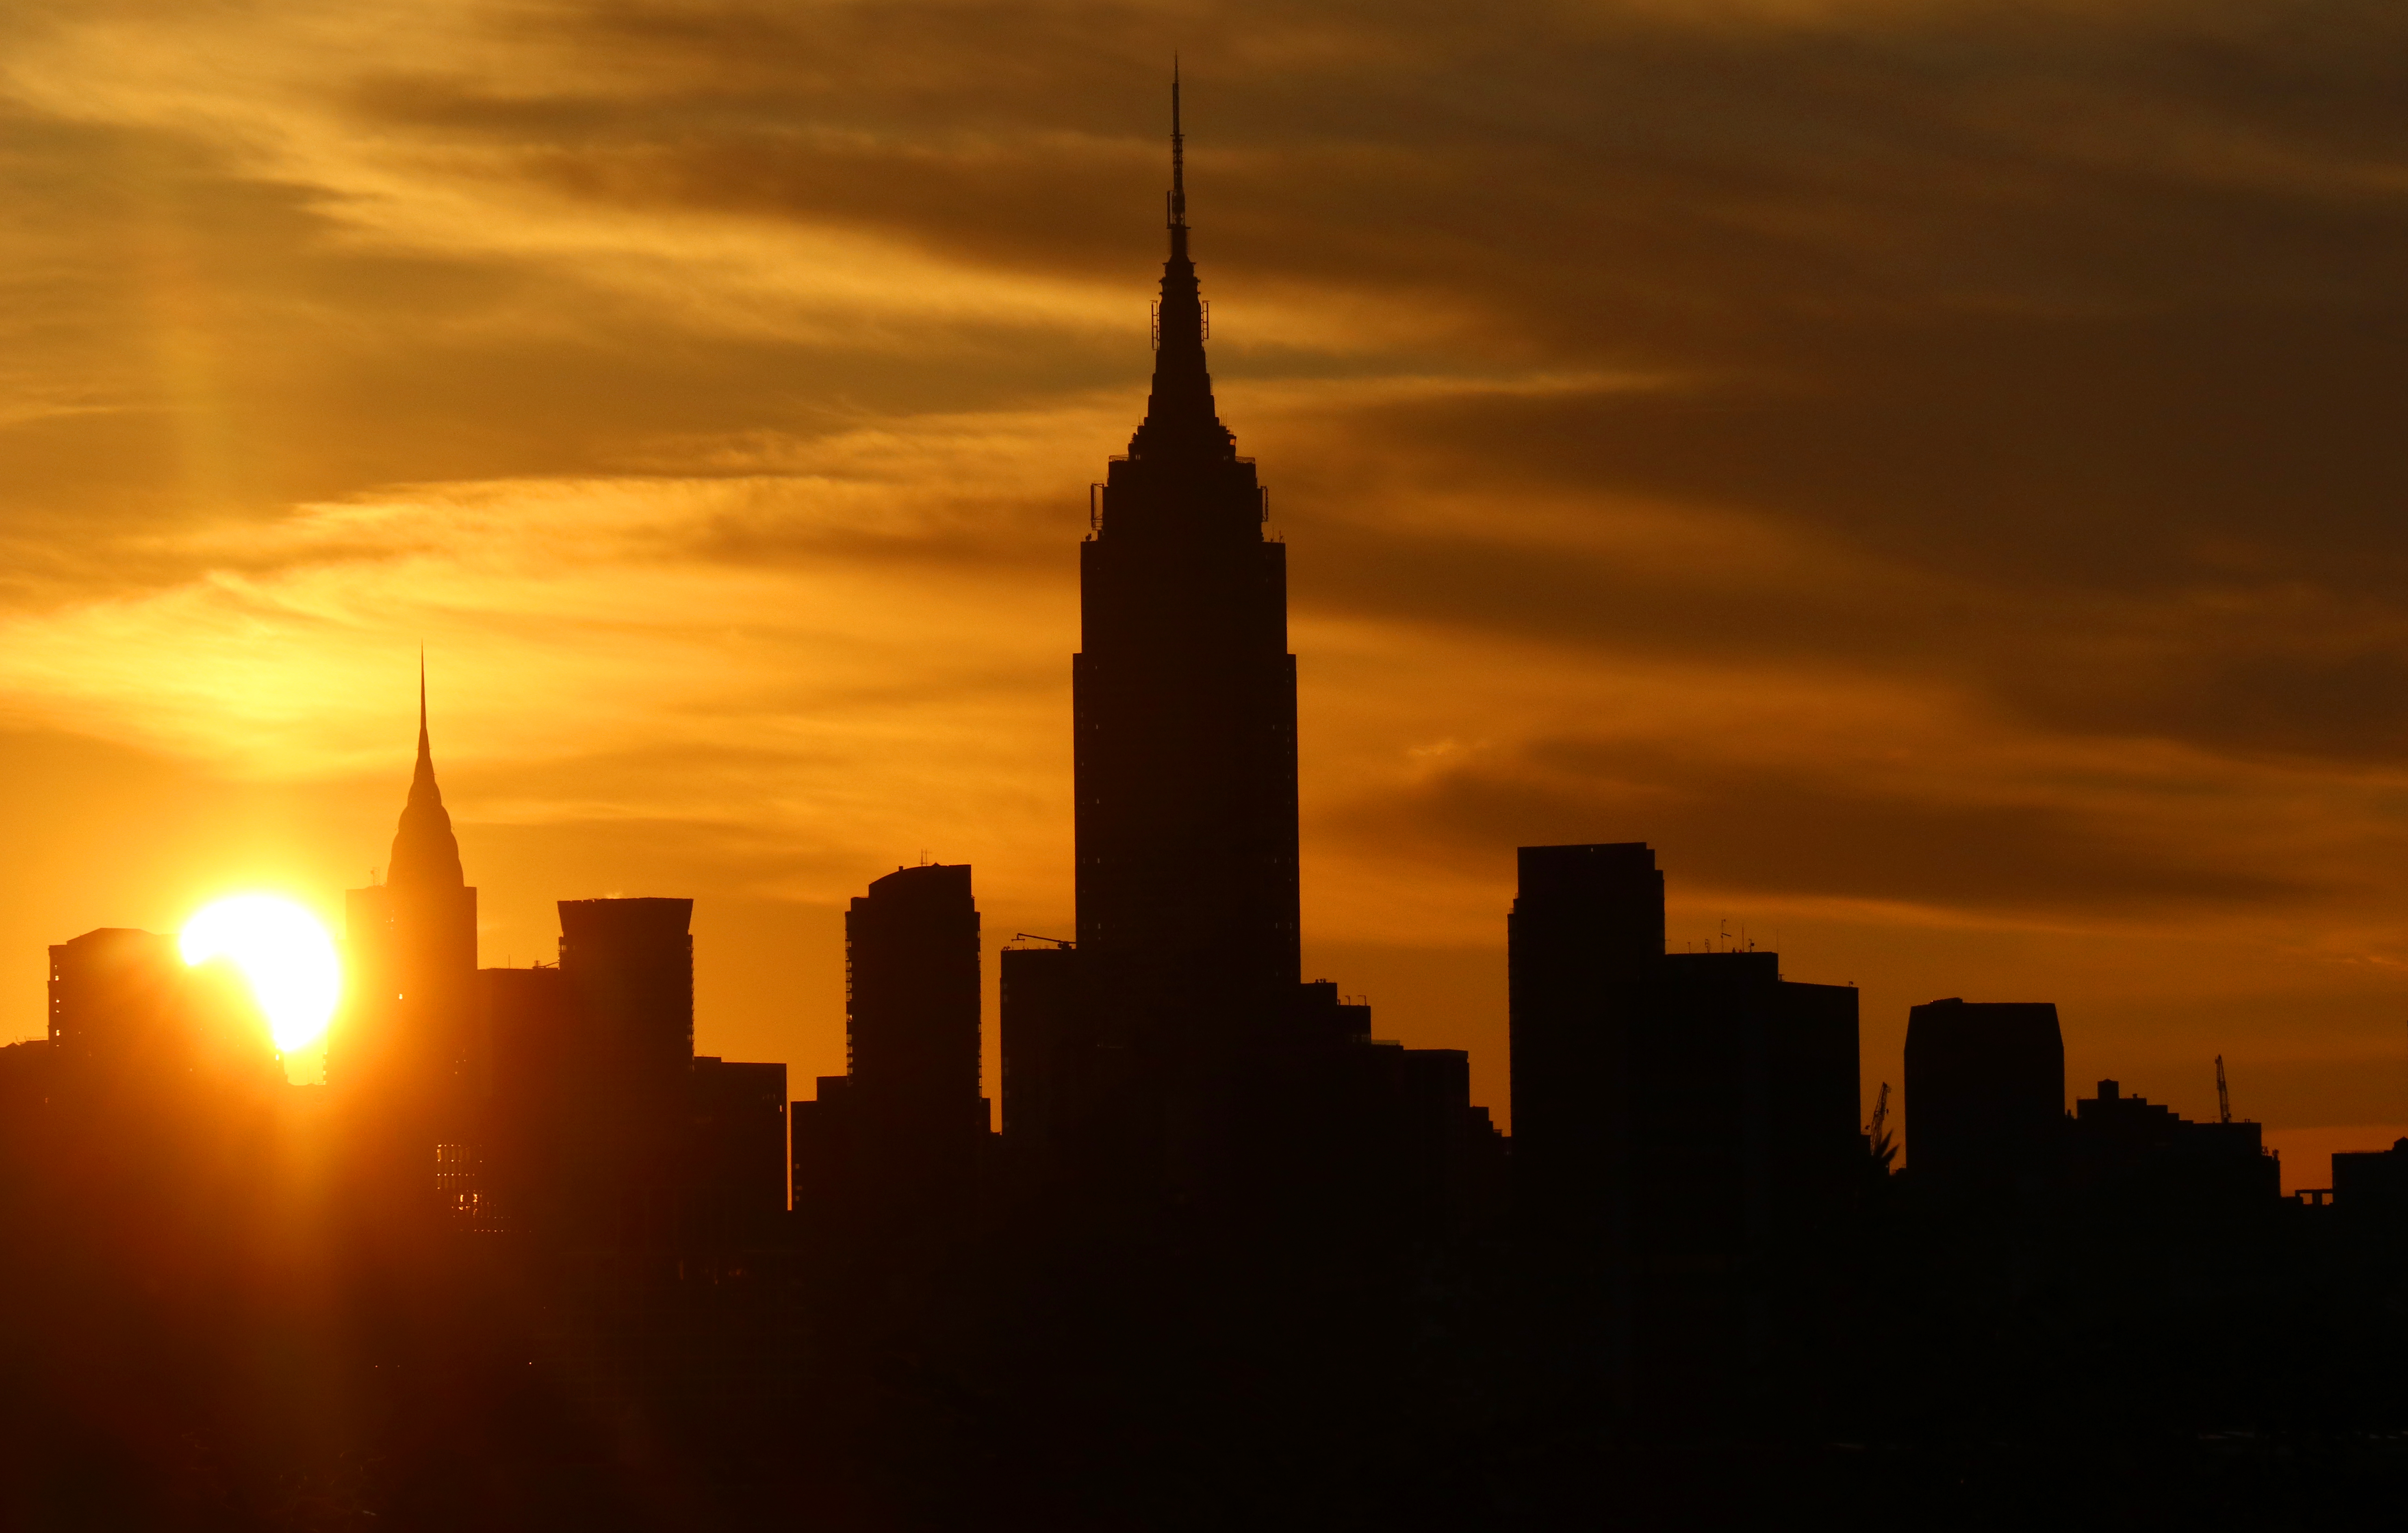 The sun rises behind midtown Manhattan and the Empire State Building in New York City on September 2, 2017, as seen from Jersey City, New Jersey.